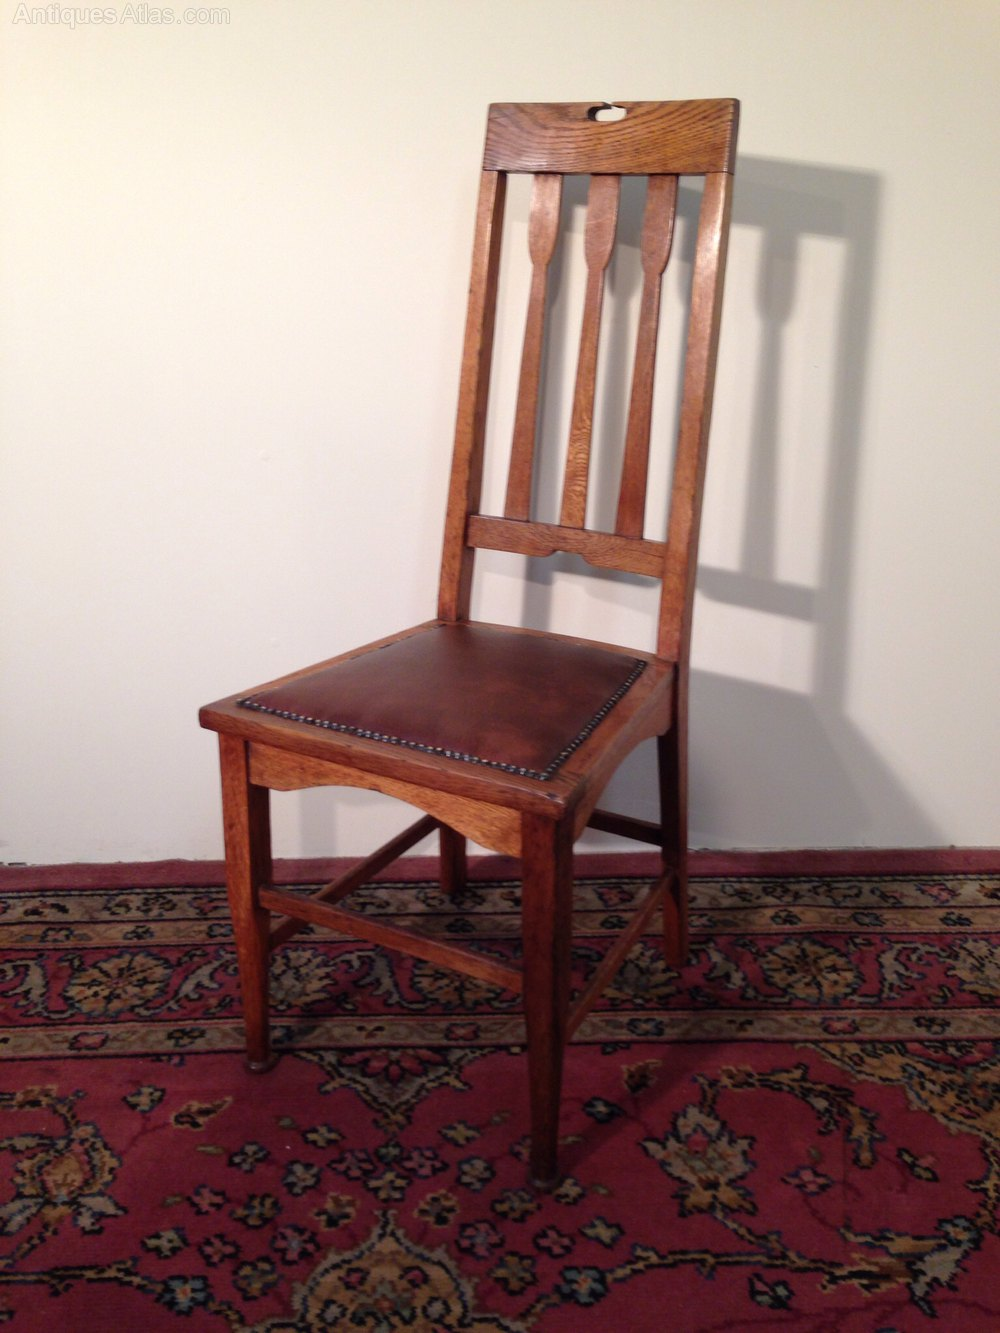 Scottish Arts And Crafts Dining Chairs - Antiques Atlas